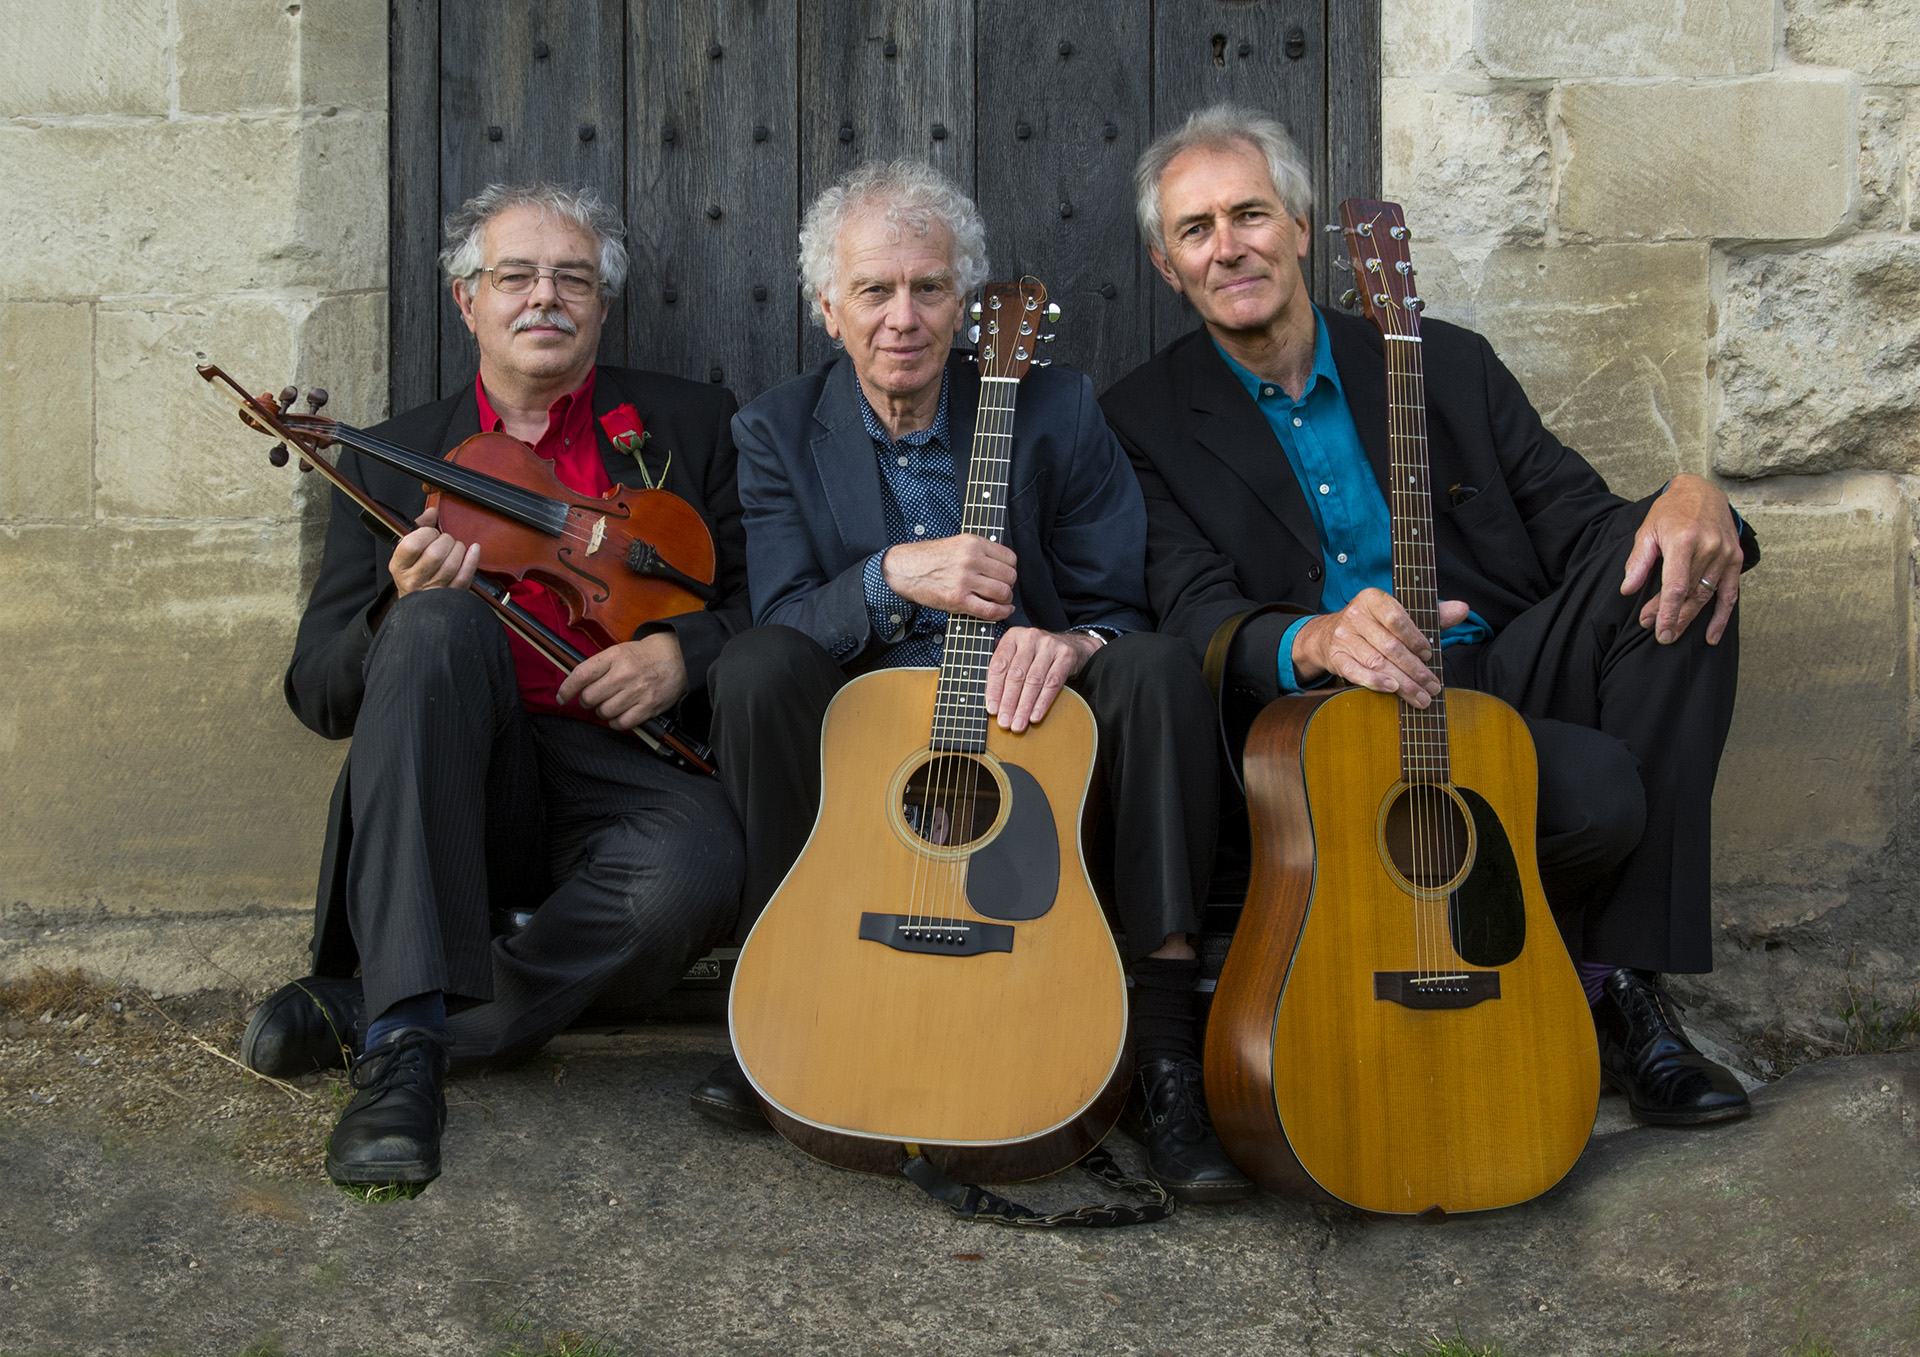 Johnny Coppin 'All on a Winter's Night' with Paul Burgess & Dik Cadbury